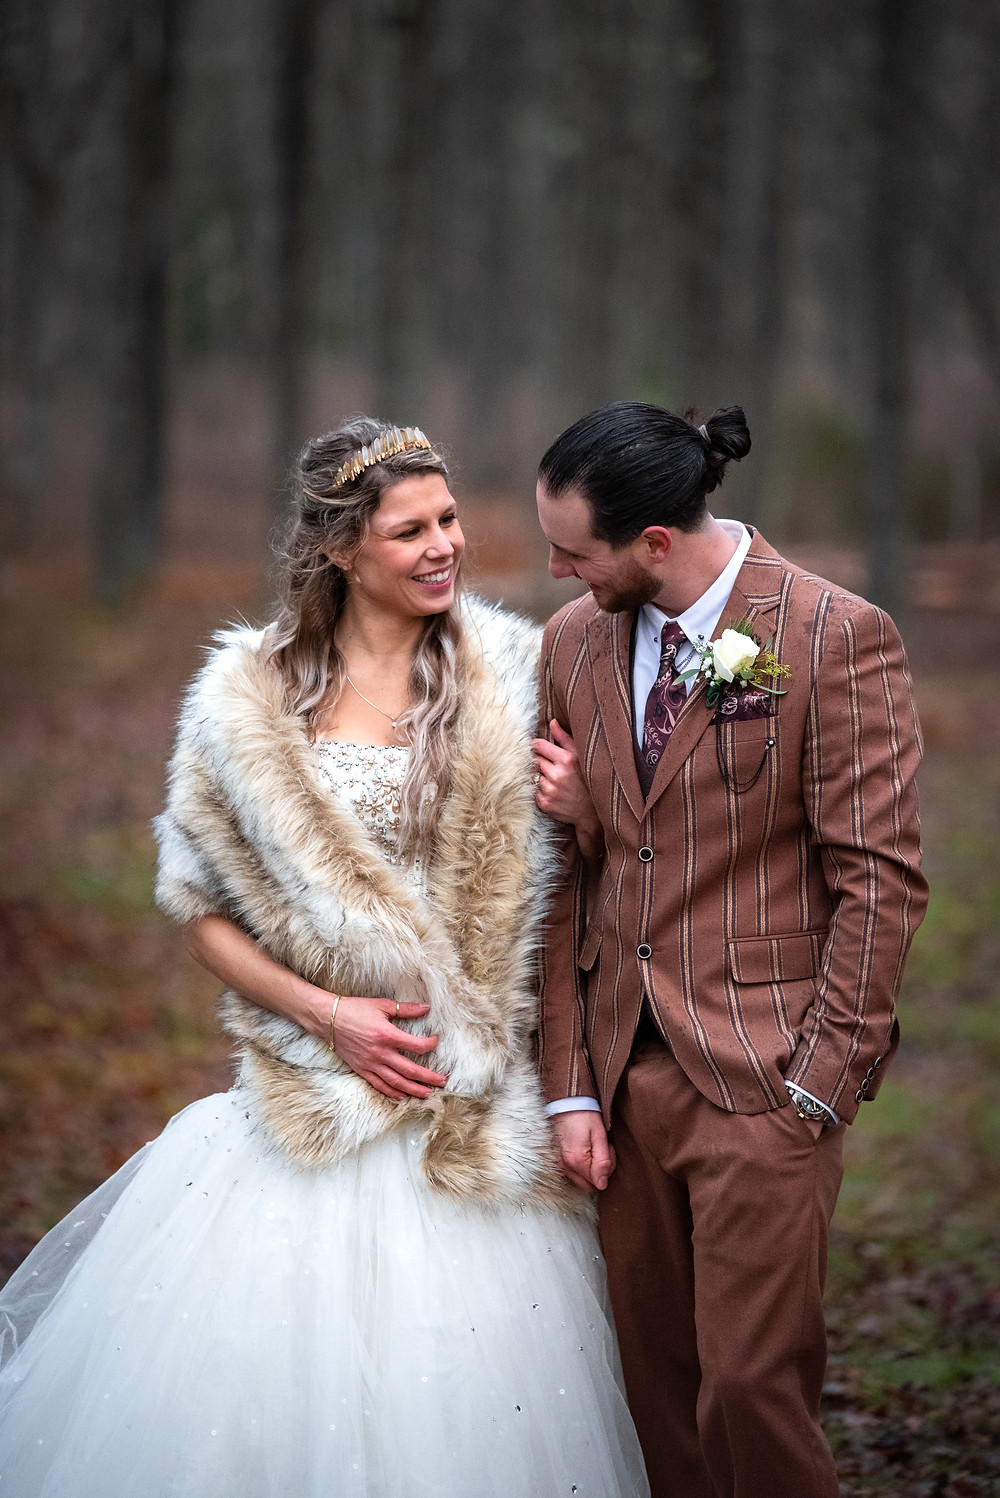 Bride and groom walking and laughing in the woods during their winter wedding